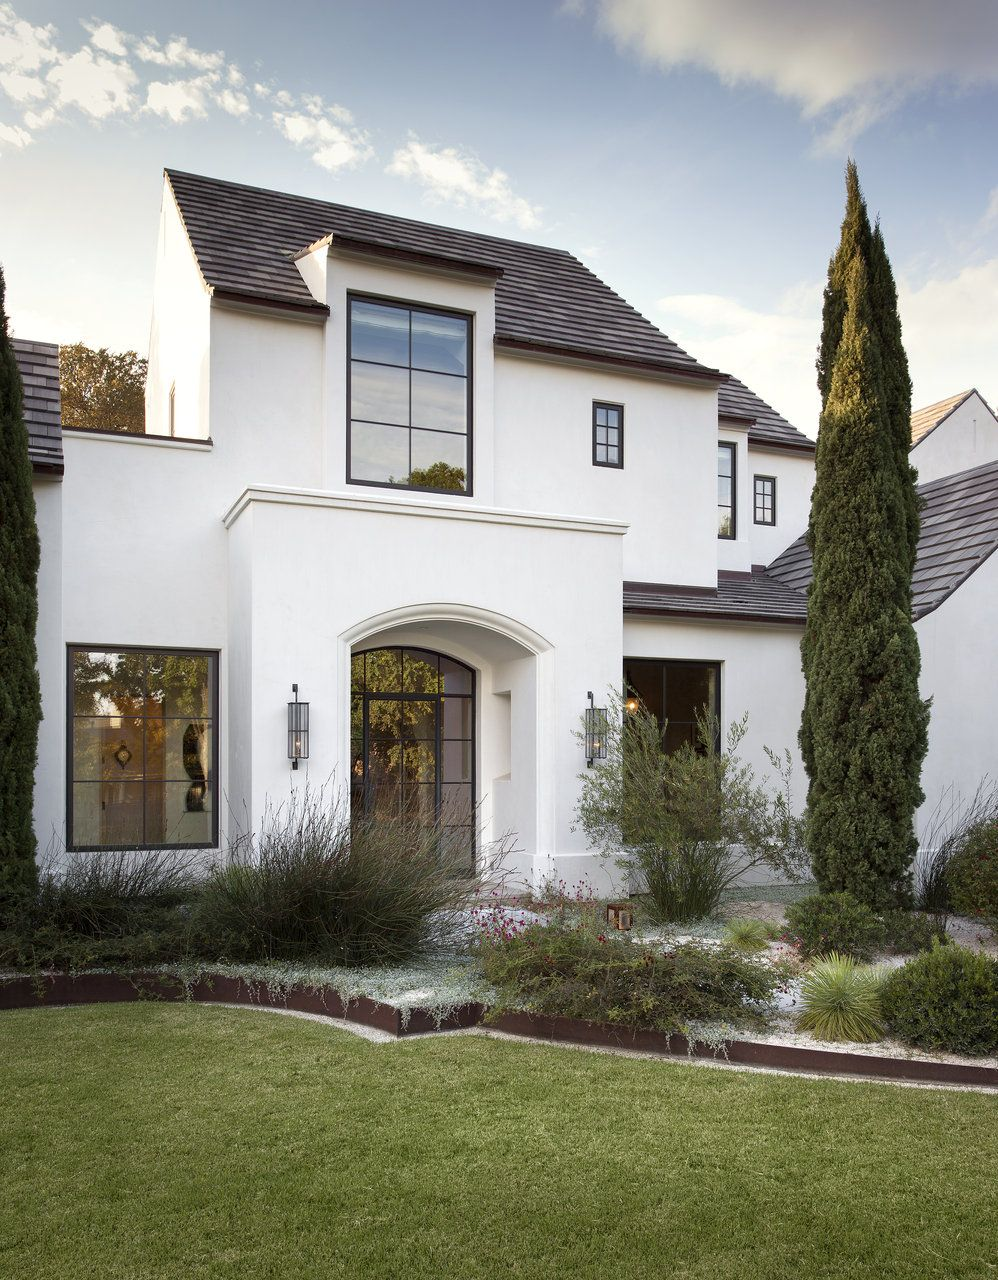 White Exterior With Black Window Frames Via Ryan Street Ociates